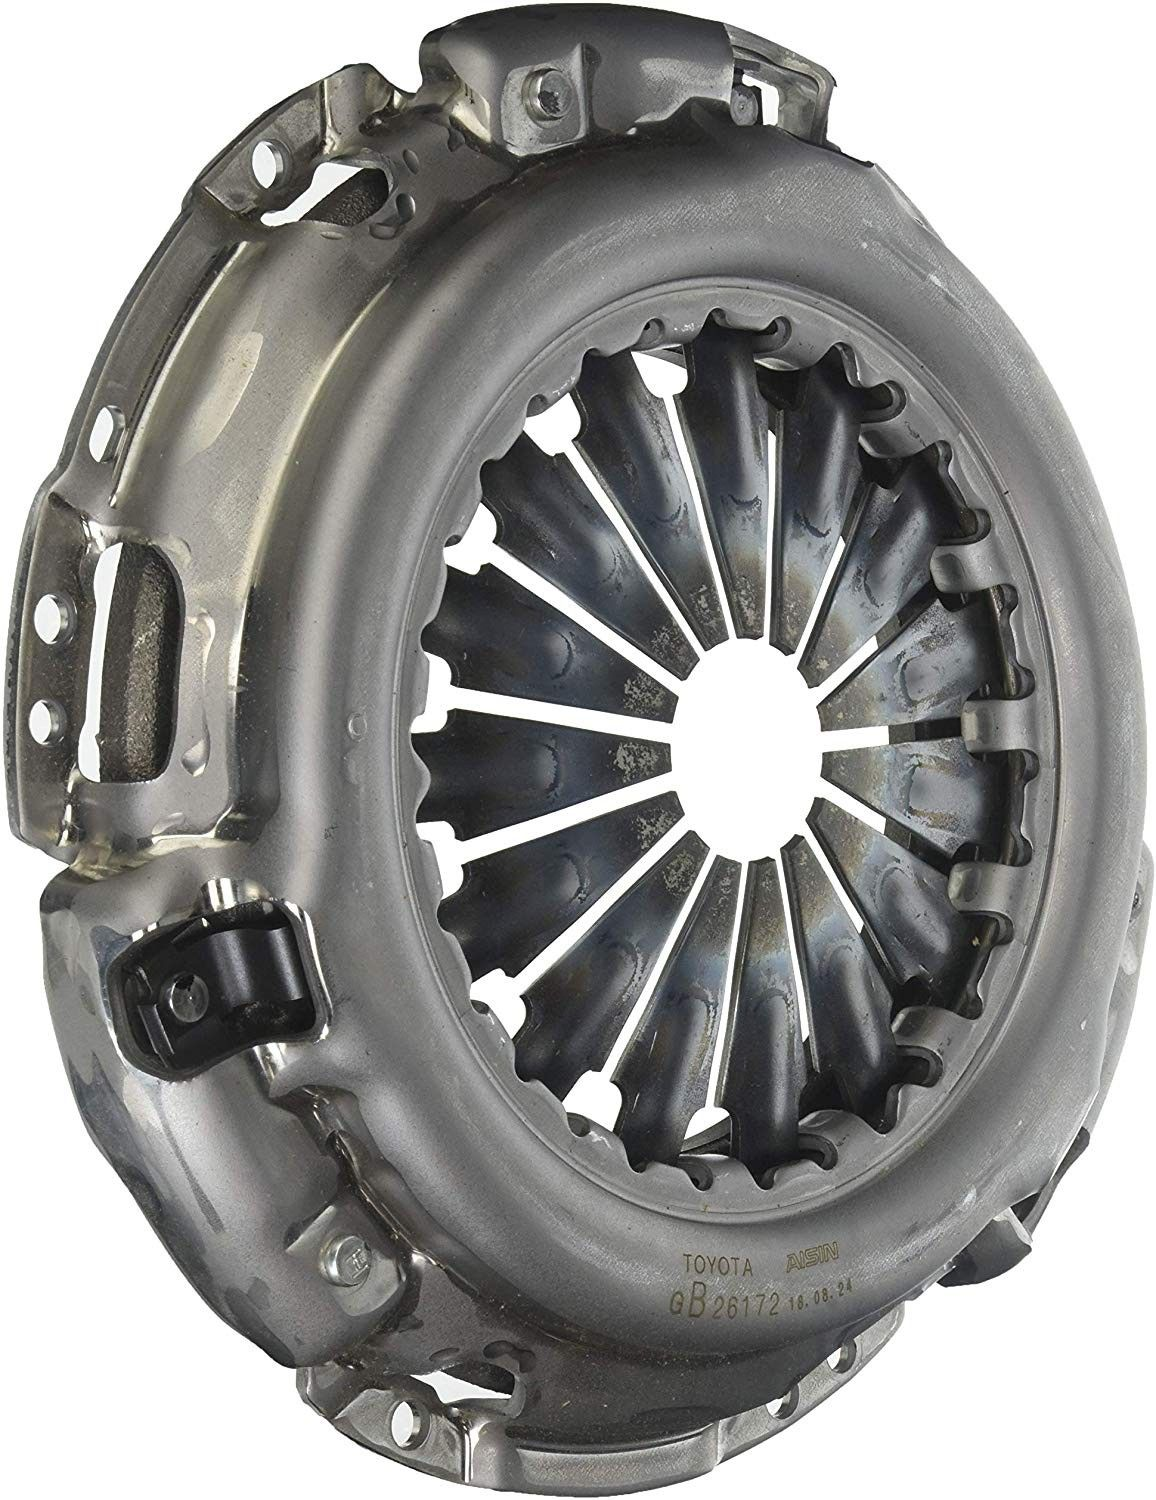 Luk Dca Assembly For Preet Tractors 55HP 280 - 2280249100